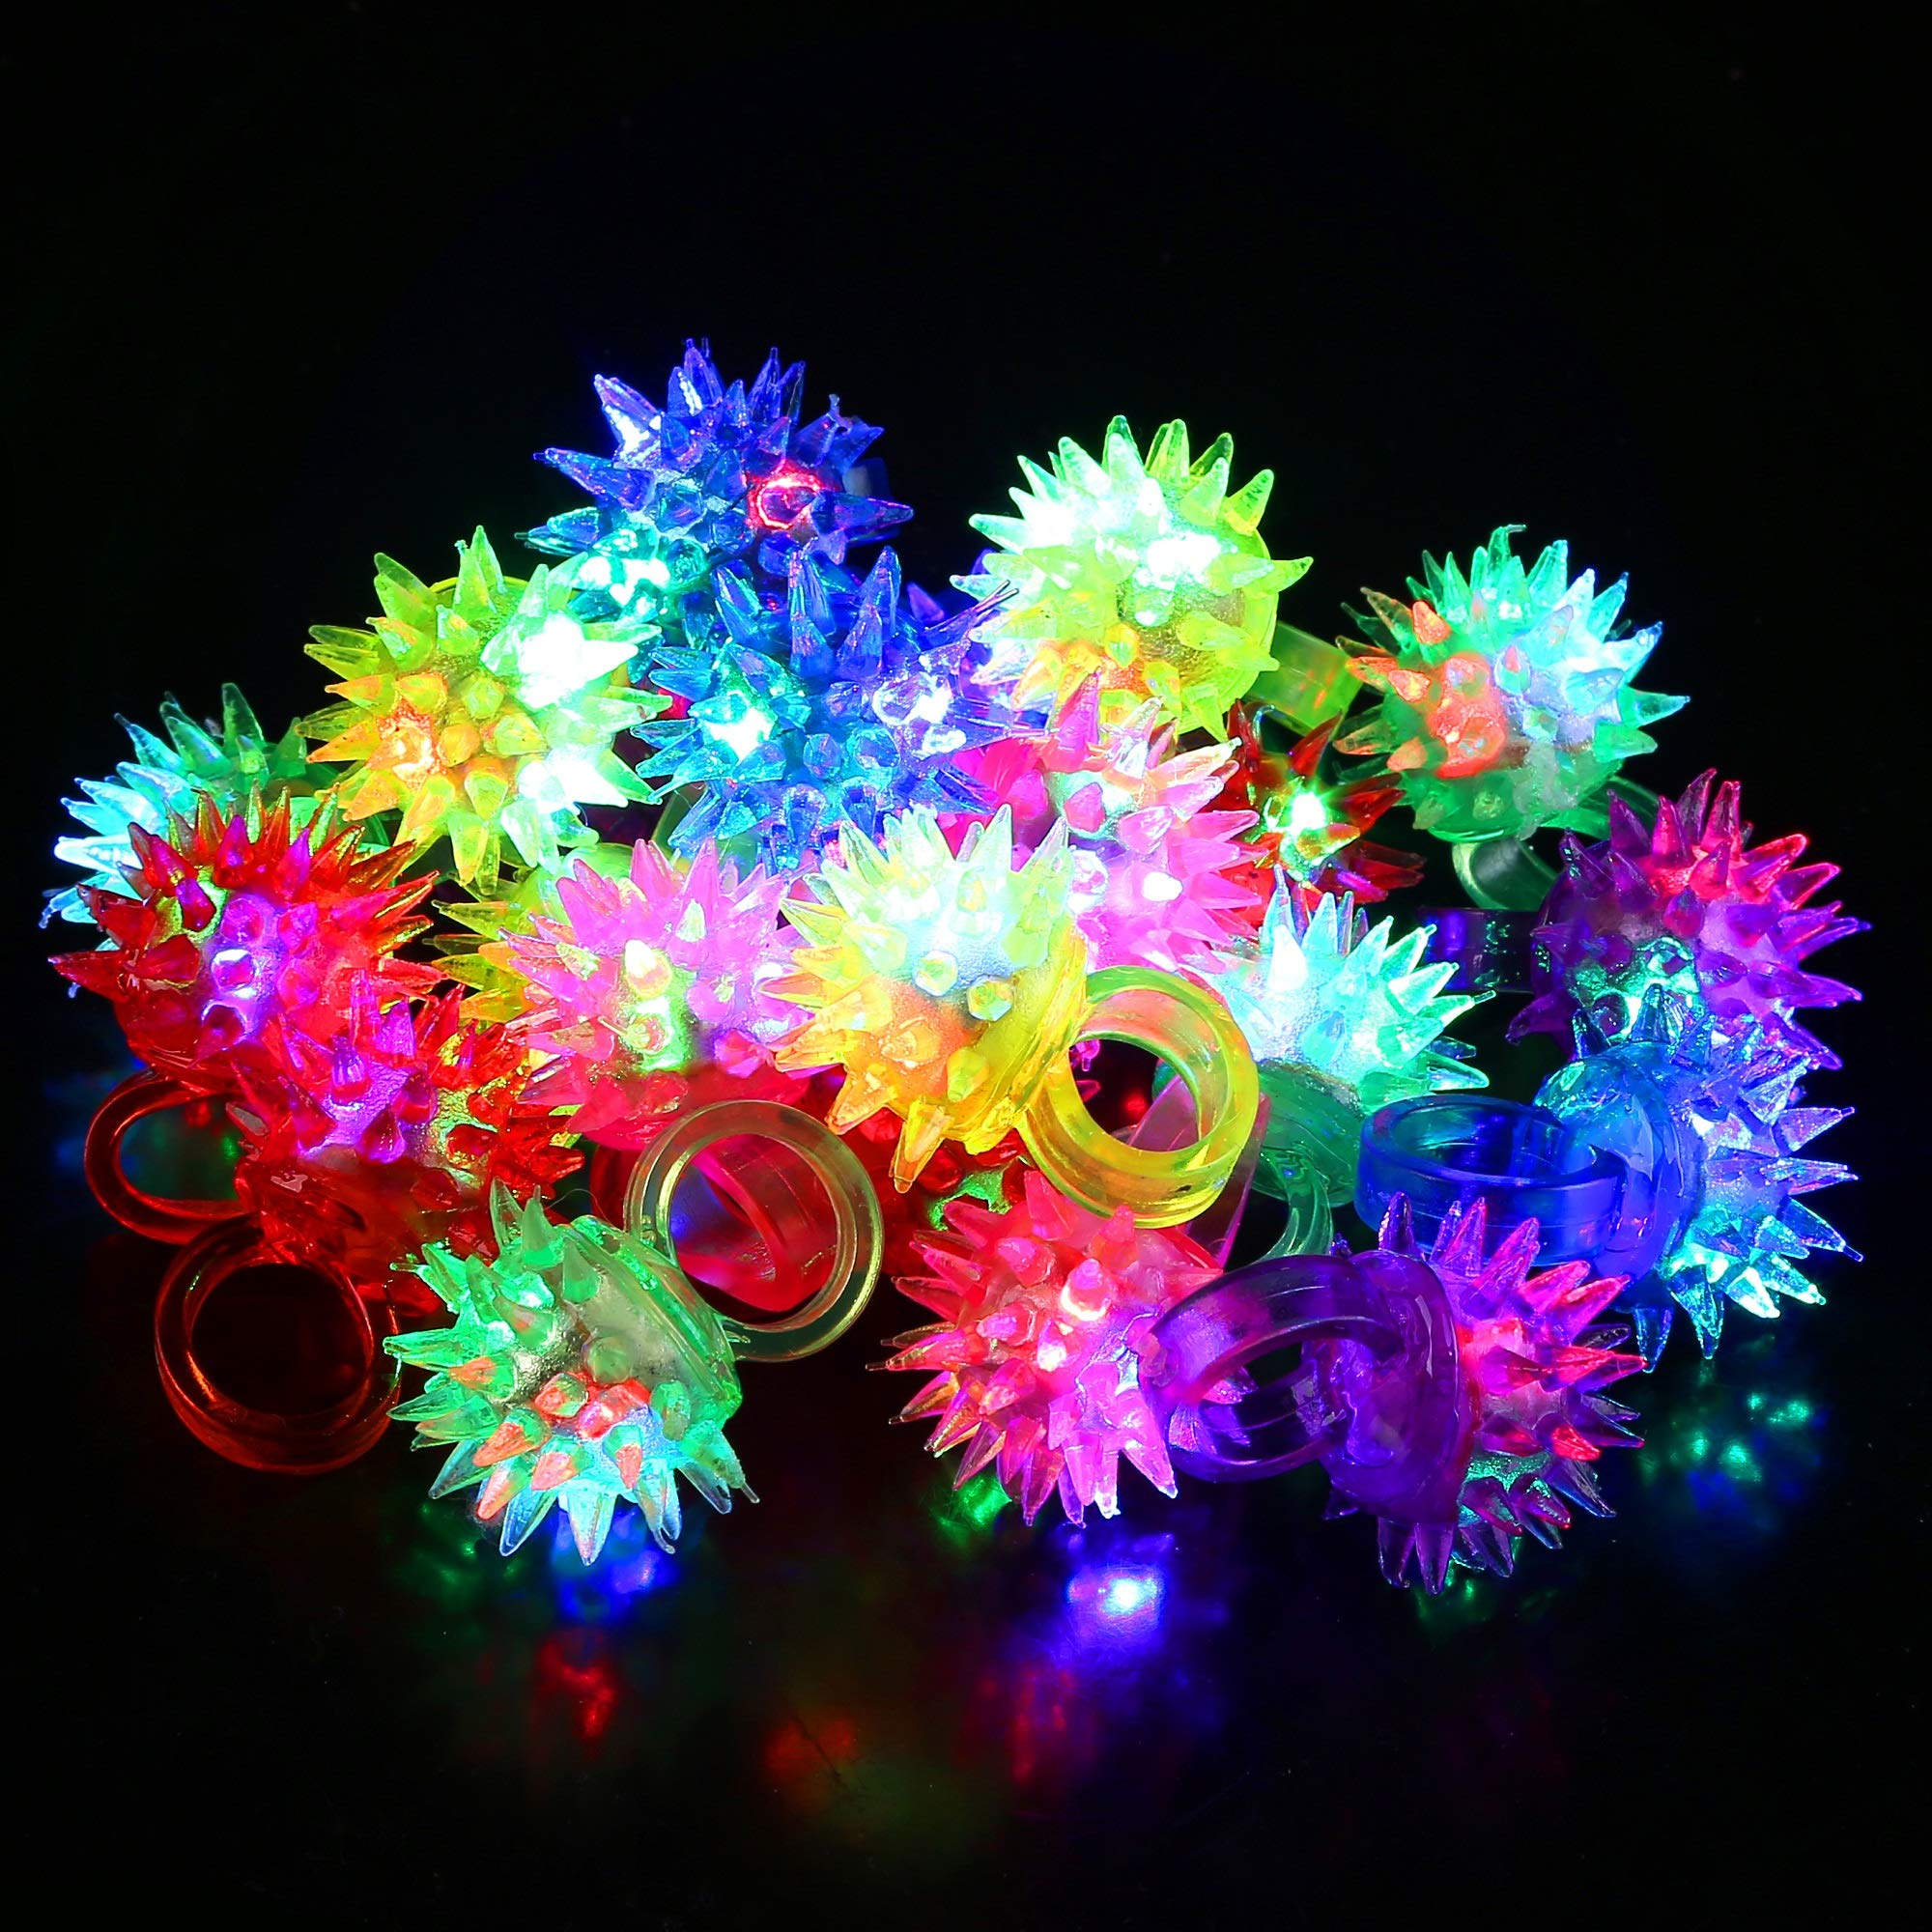 Fun Central 24 Pack - LED Light Up Porcupine Spike Rings Bulk - Blinky Jelly Ring Party Favor for Bar and Parties - Assorted Colors by Fun Central